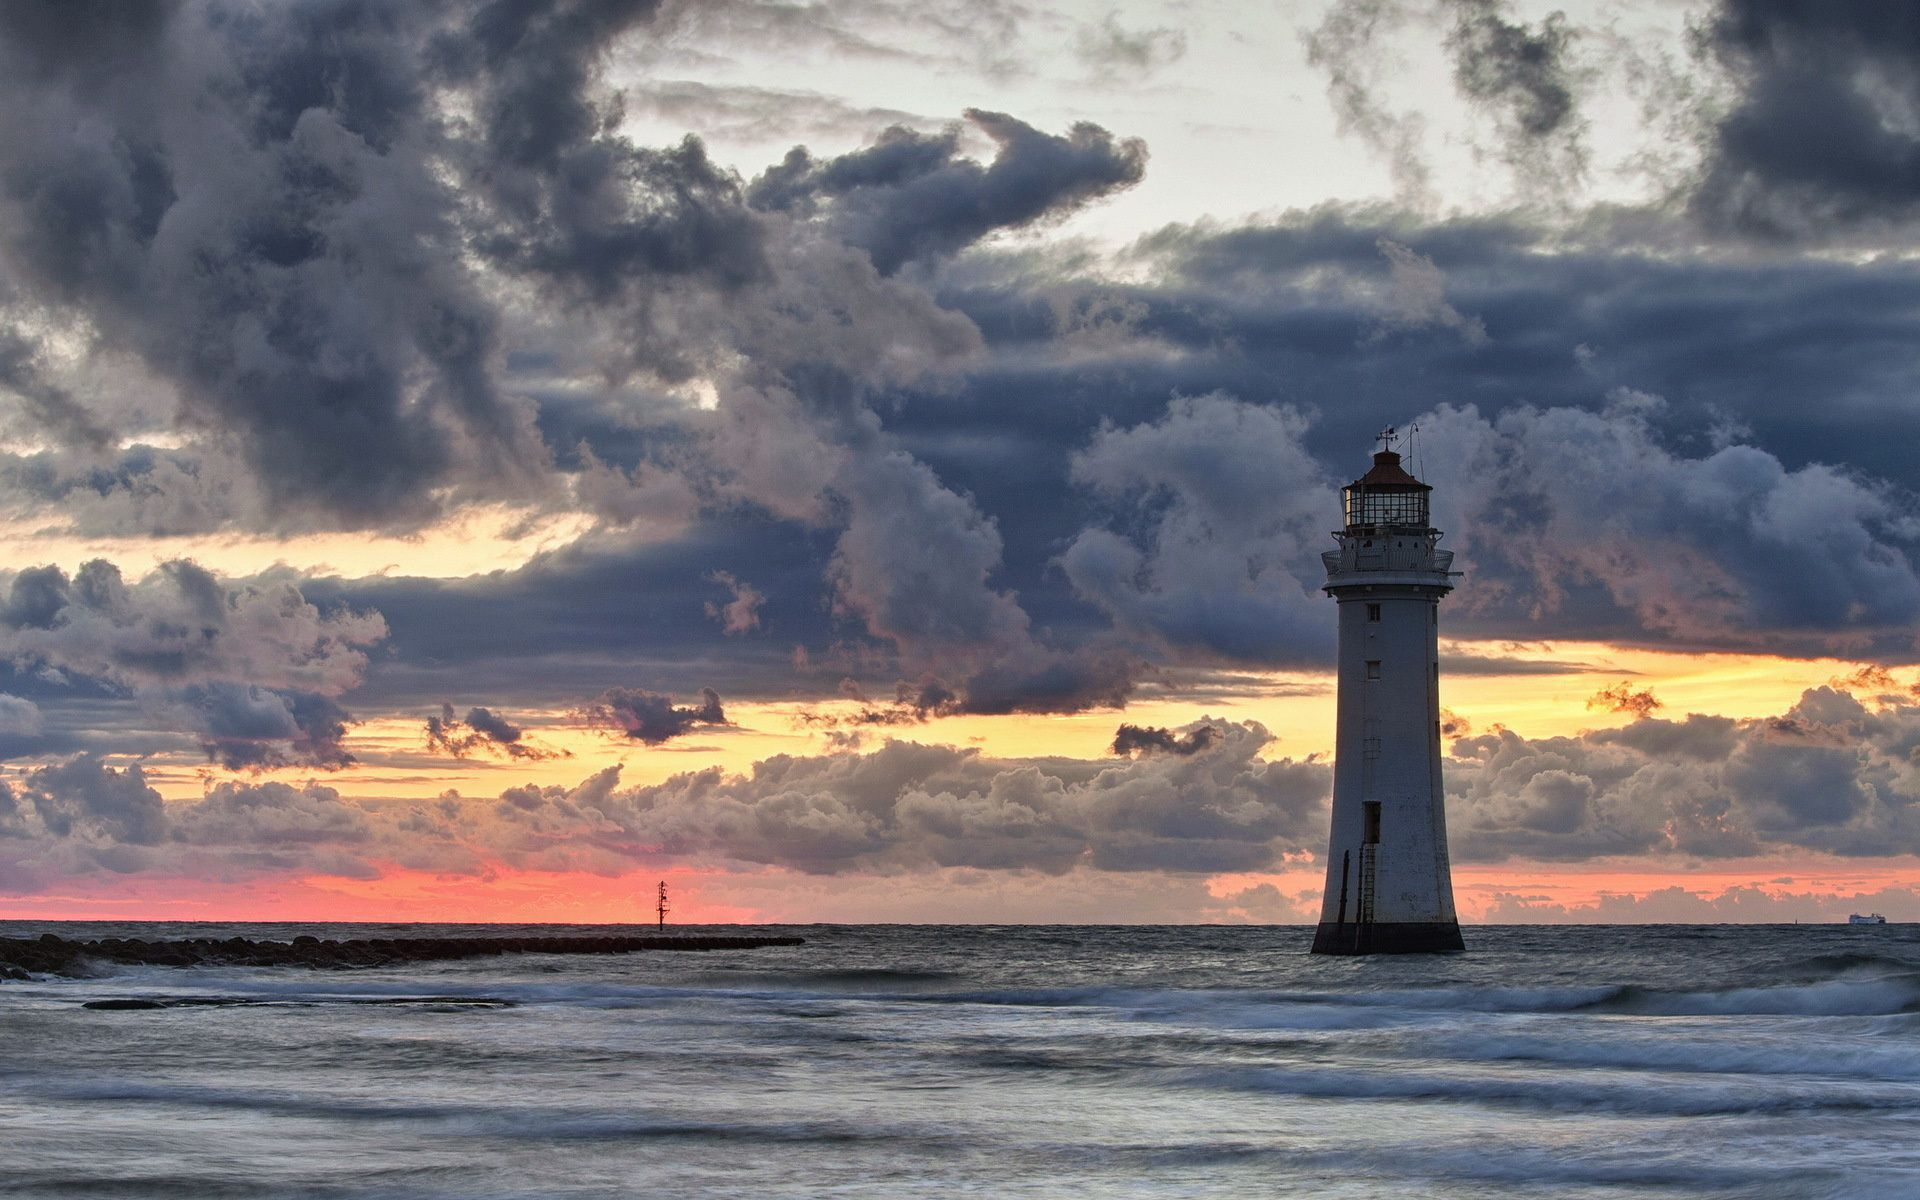 Lighthouse Hd Wallpapers: Lighthouse Wallpapers Backgrounds